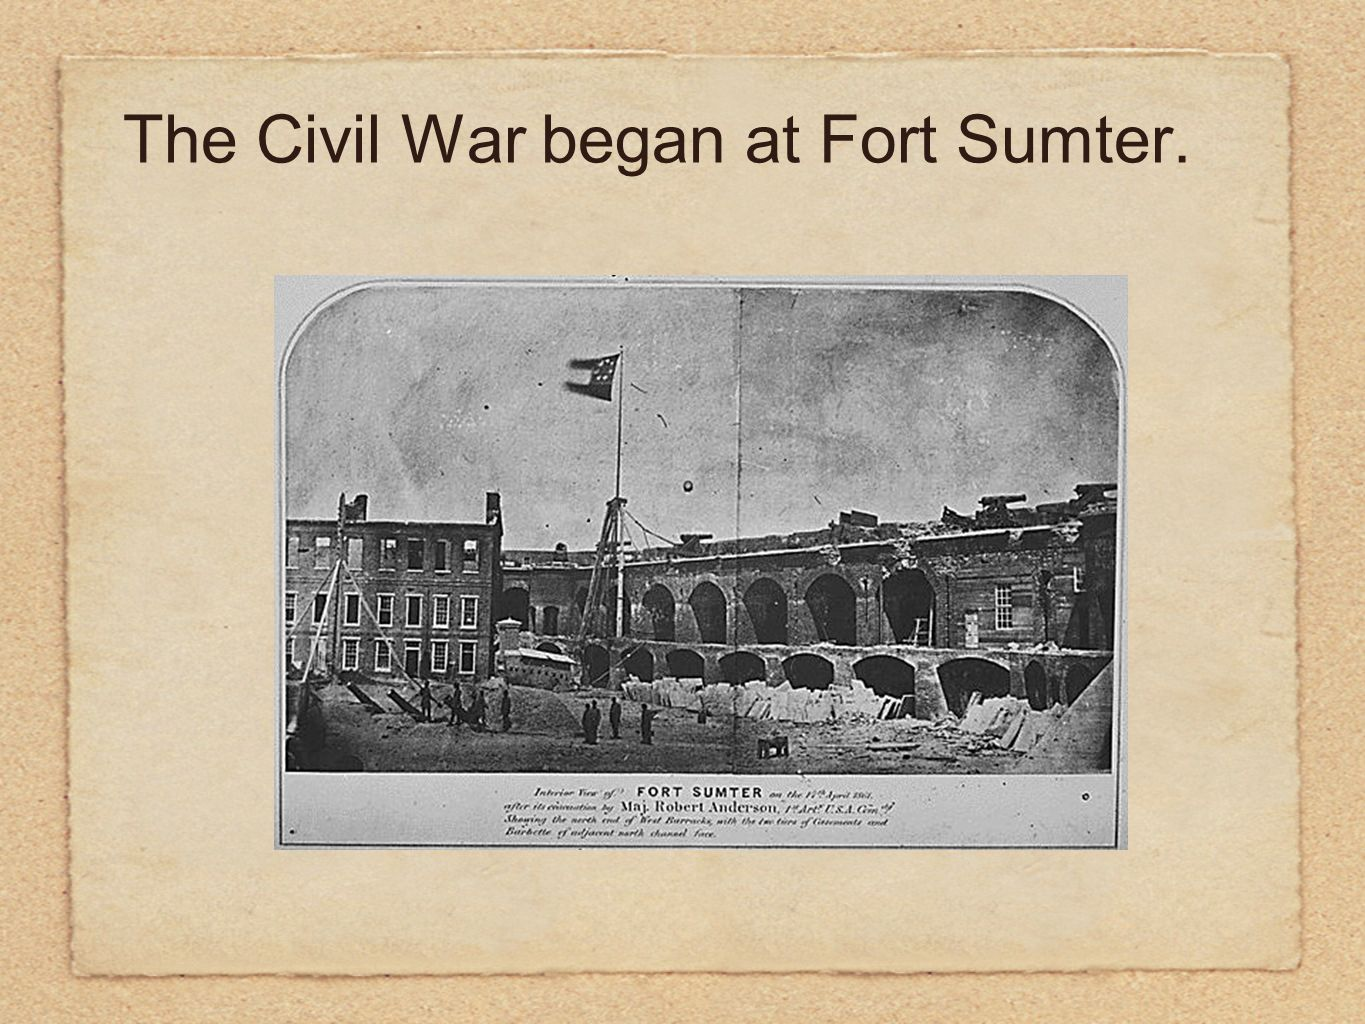 The Civil War began at Fort Sumter.